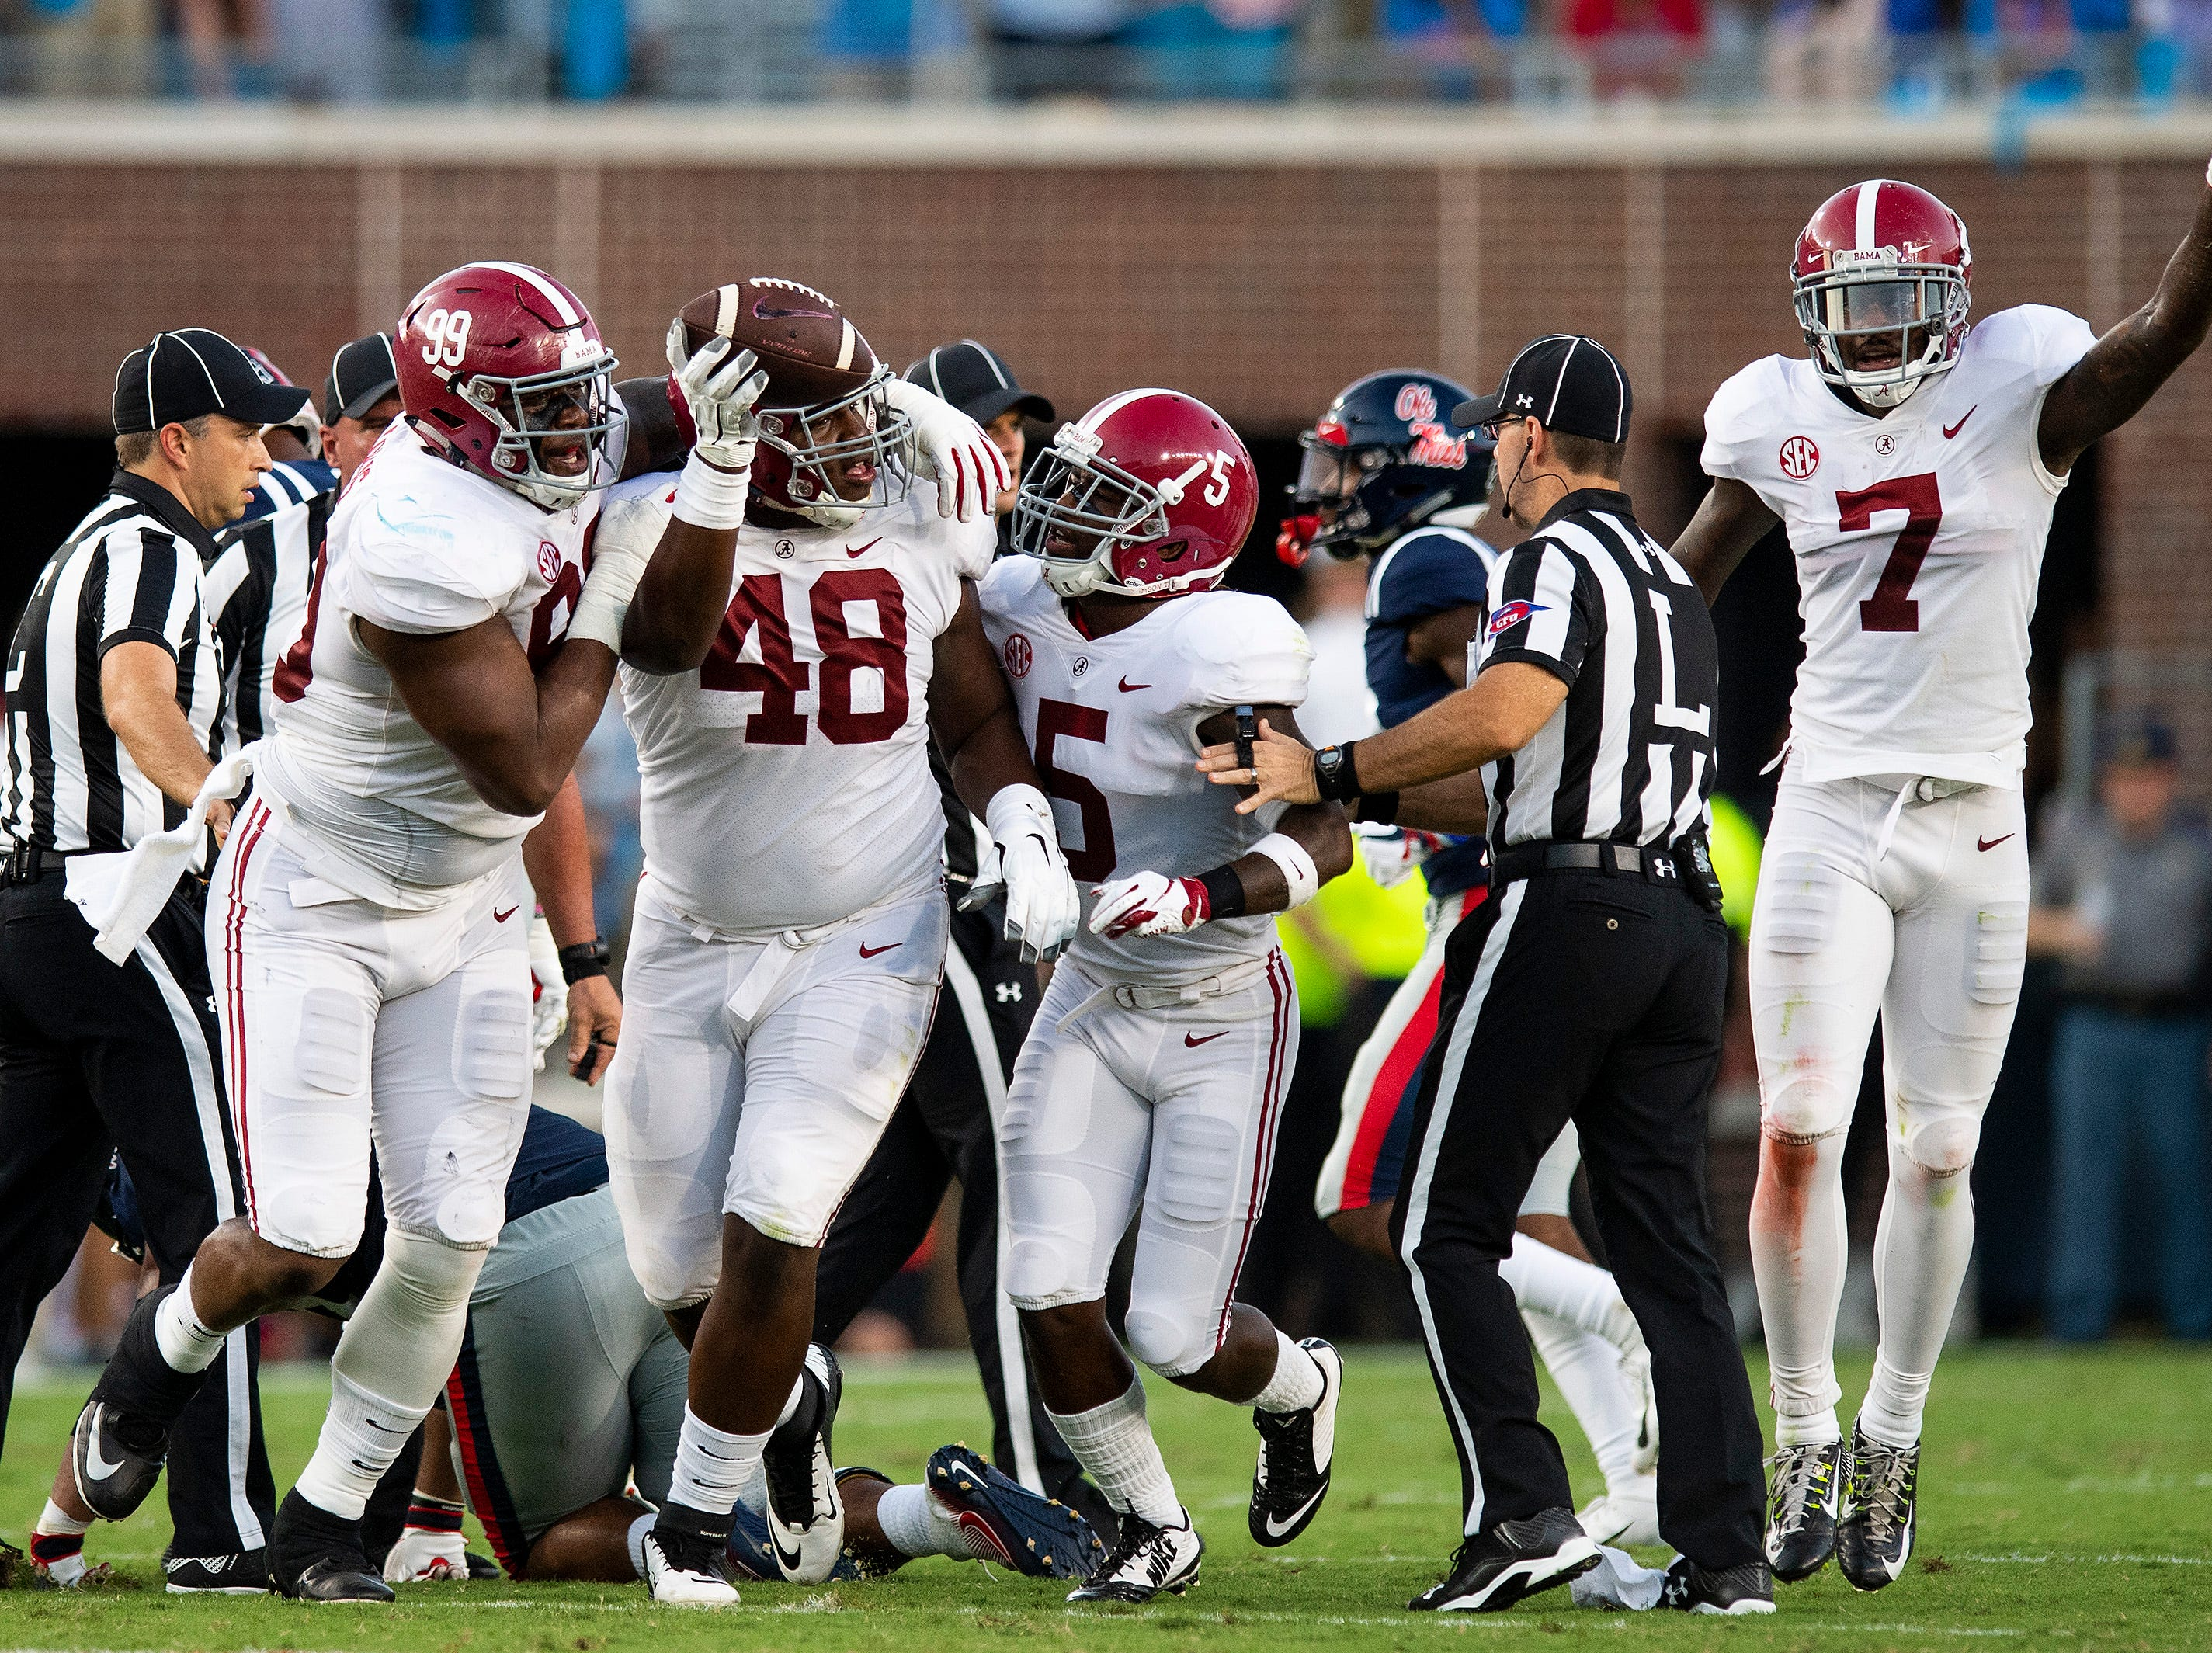 Alabama defensive lineman Phidarian Mathis (48) recovered an Ole Miss fumble In first half action in Oxford, Ms., on Saturday September 15, 2018.